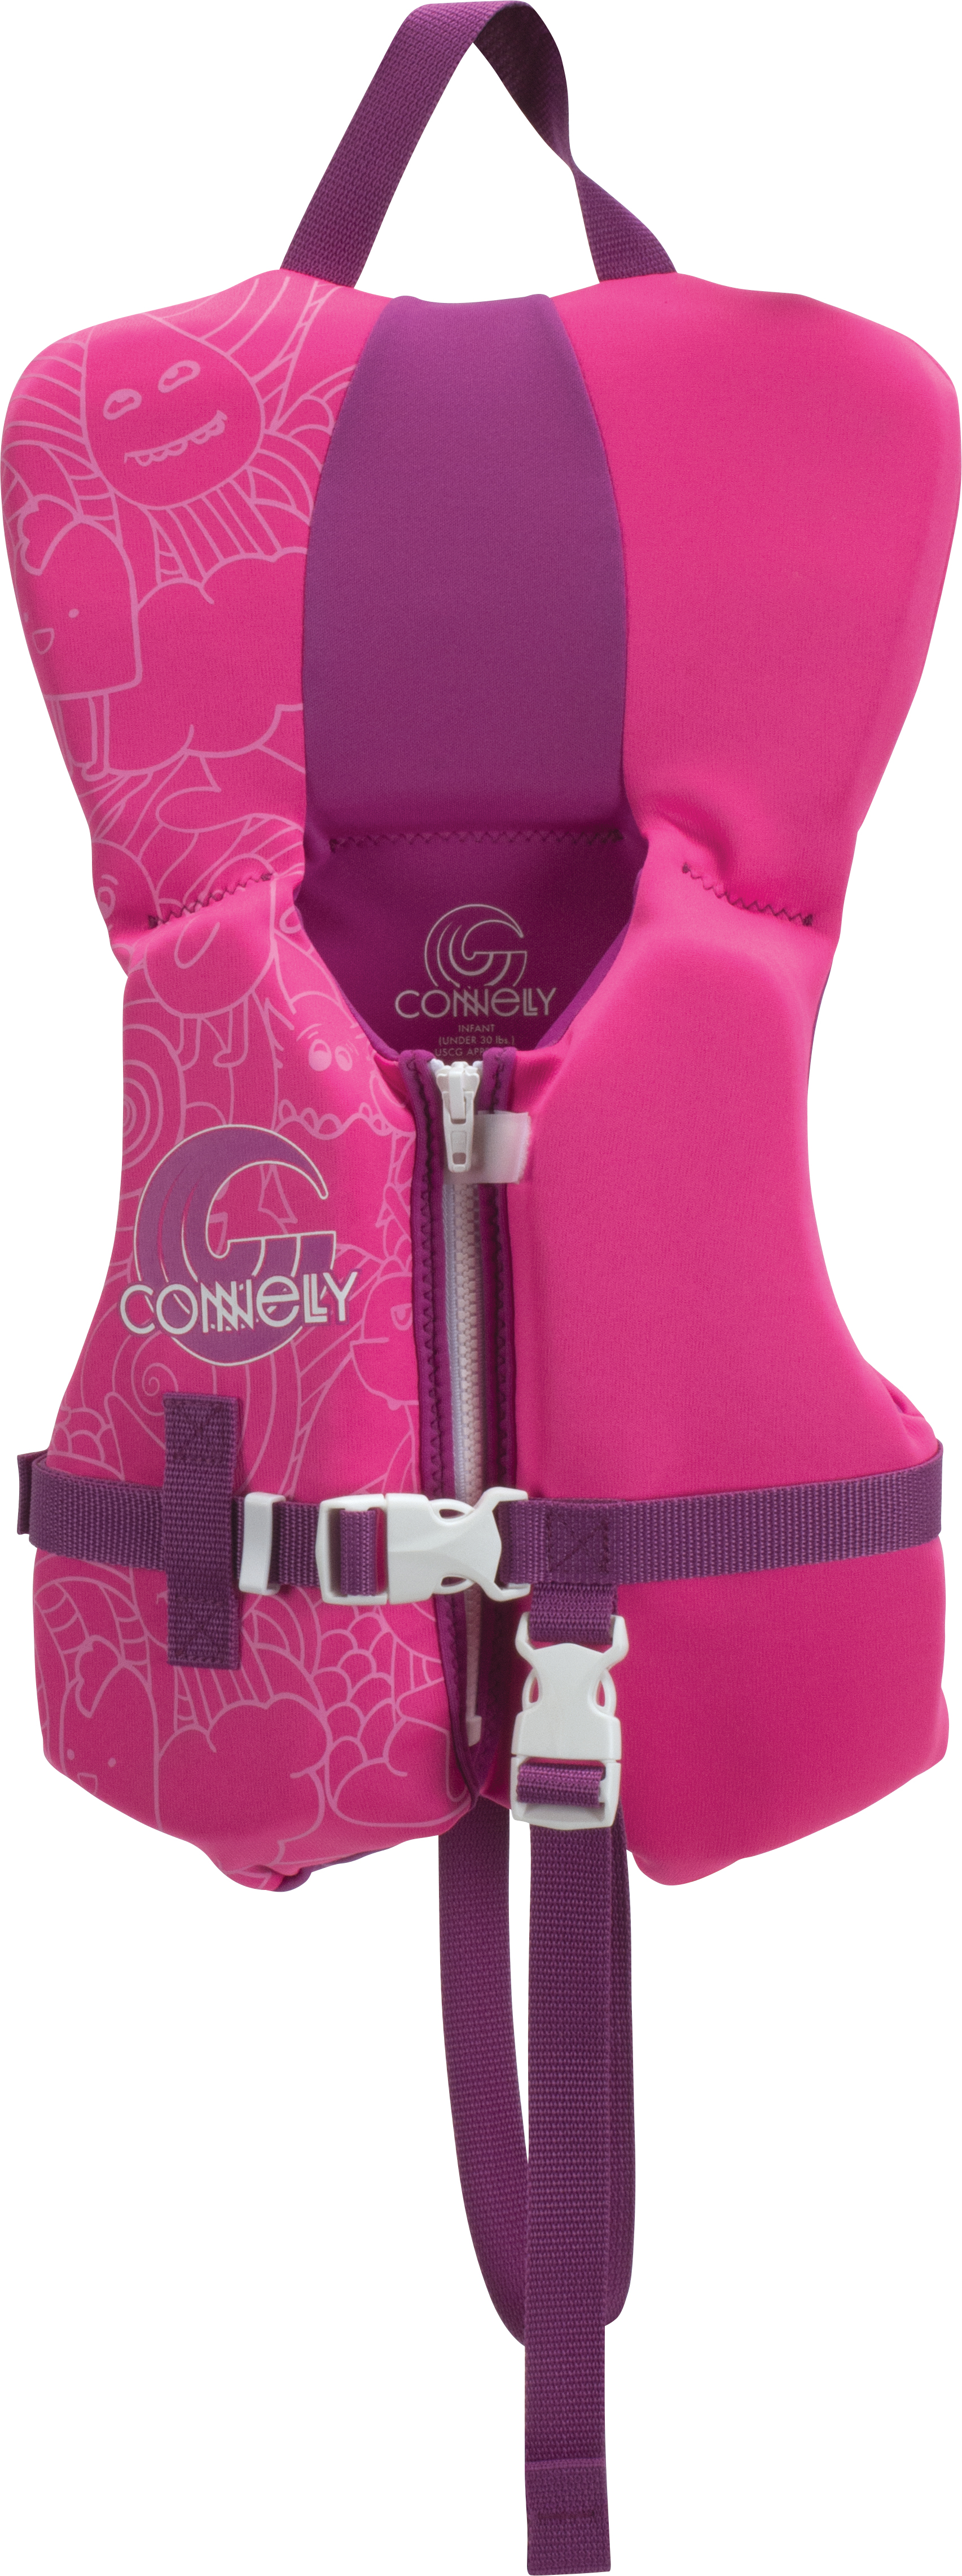 GIRL'S PROMO NEO LIFE VEST - INFANT 0-14KG CONNELLY 2018